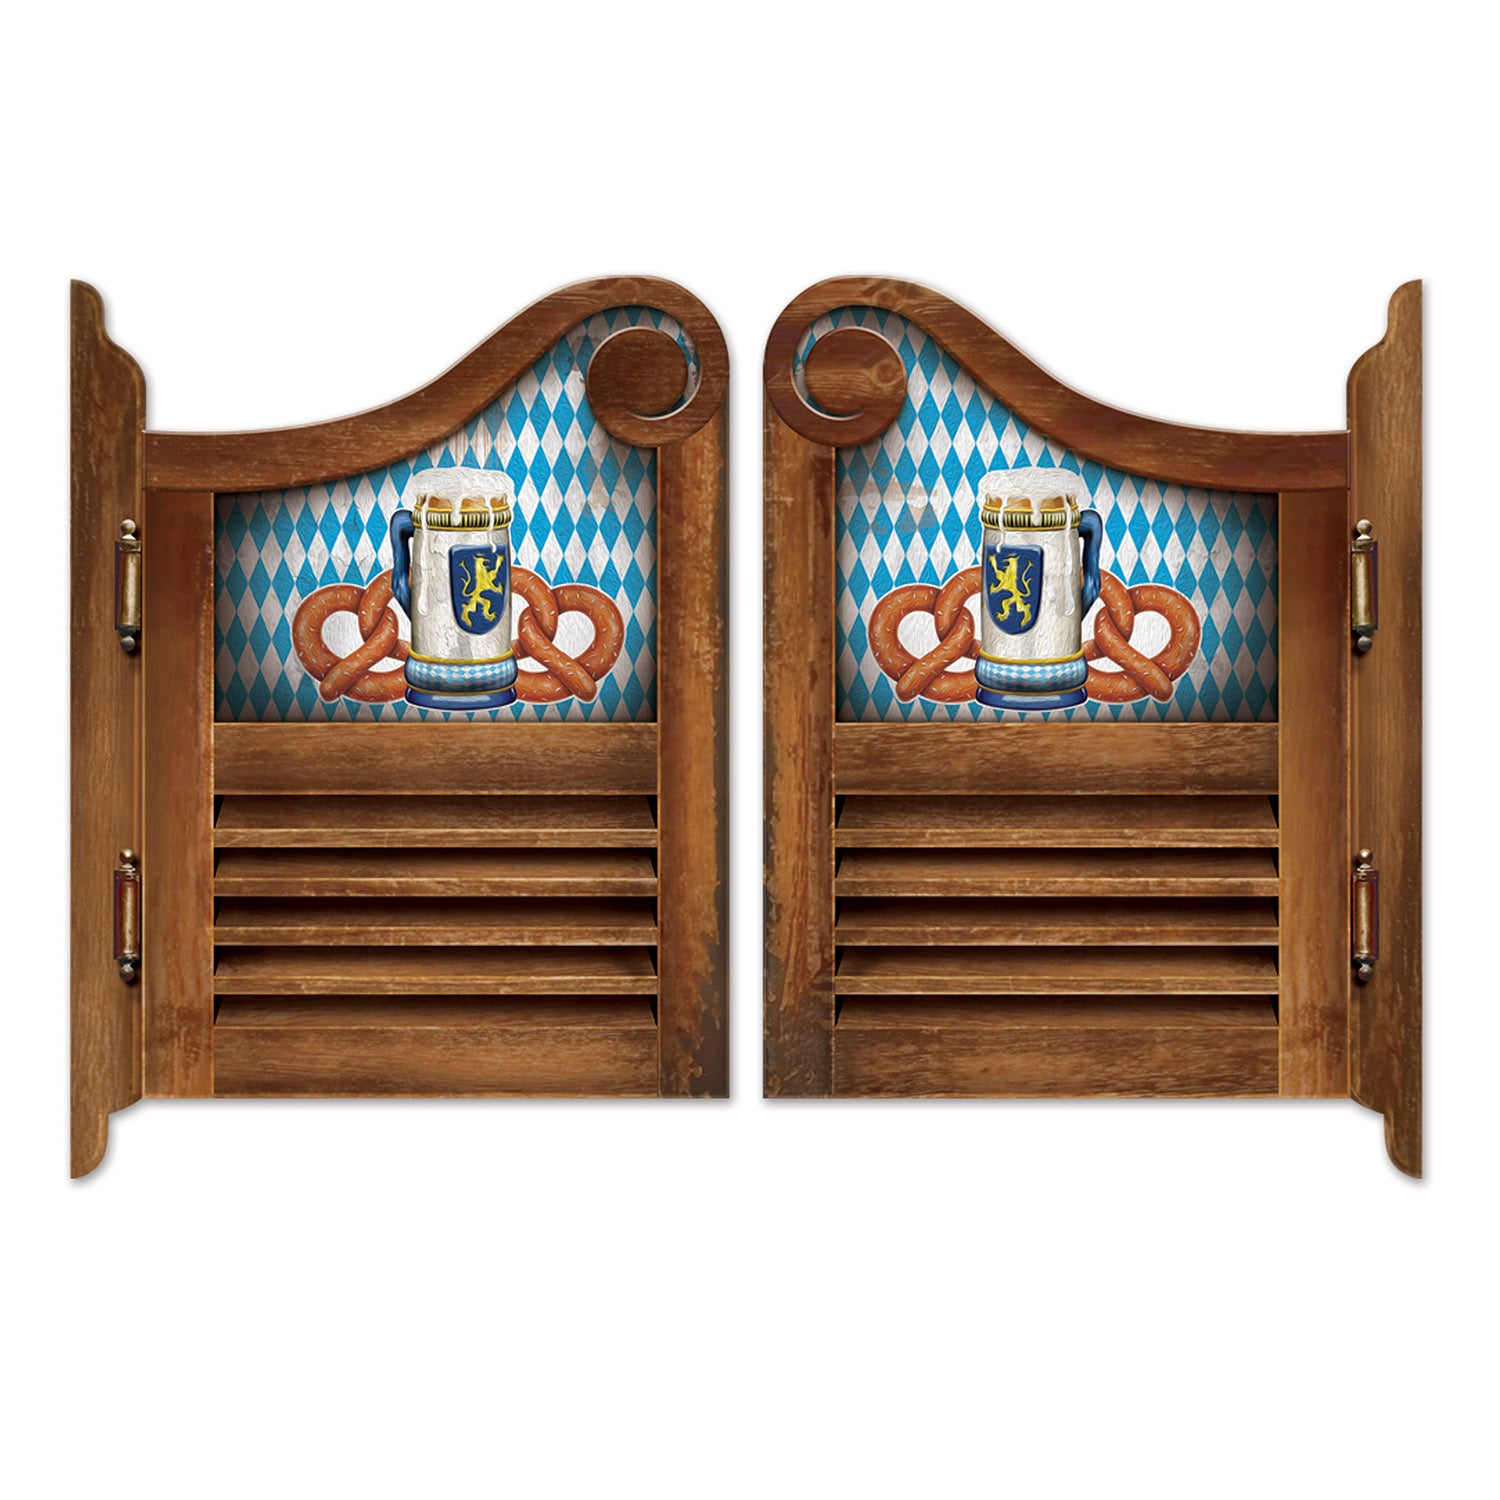 Oktoberfest Saloon Door Cutouts by Beistle - Oktoberfest Theme Decorations